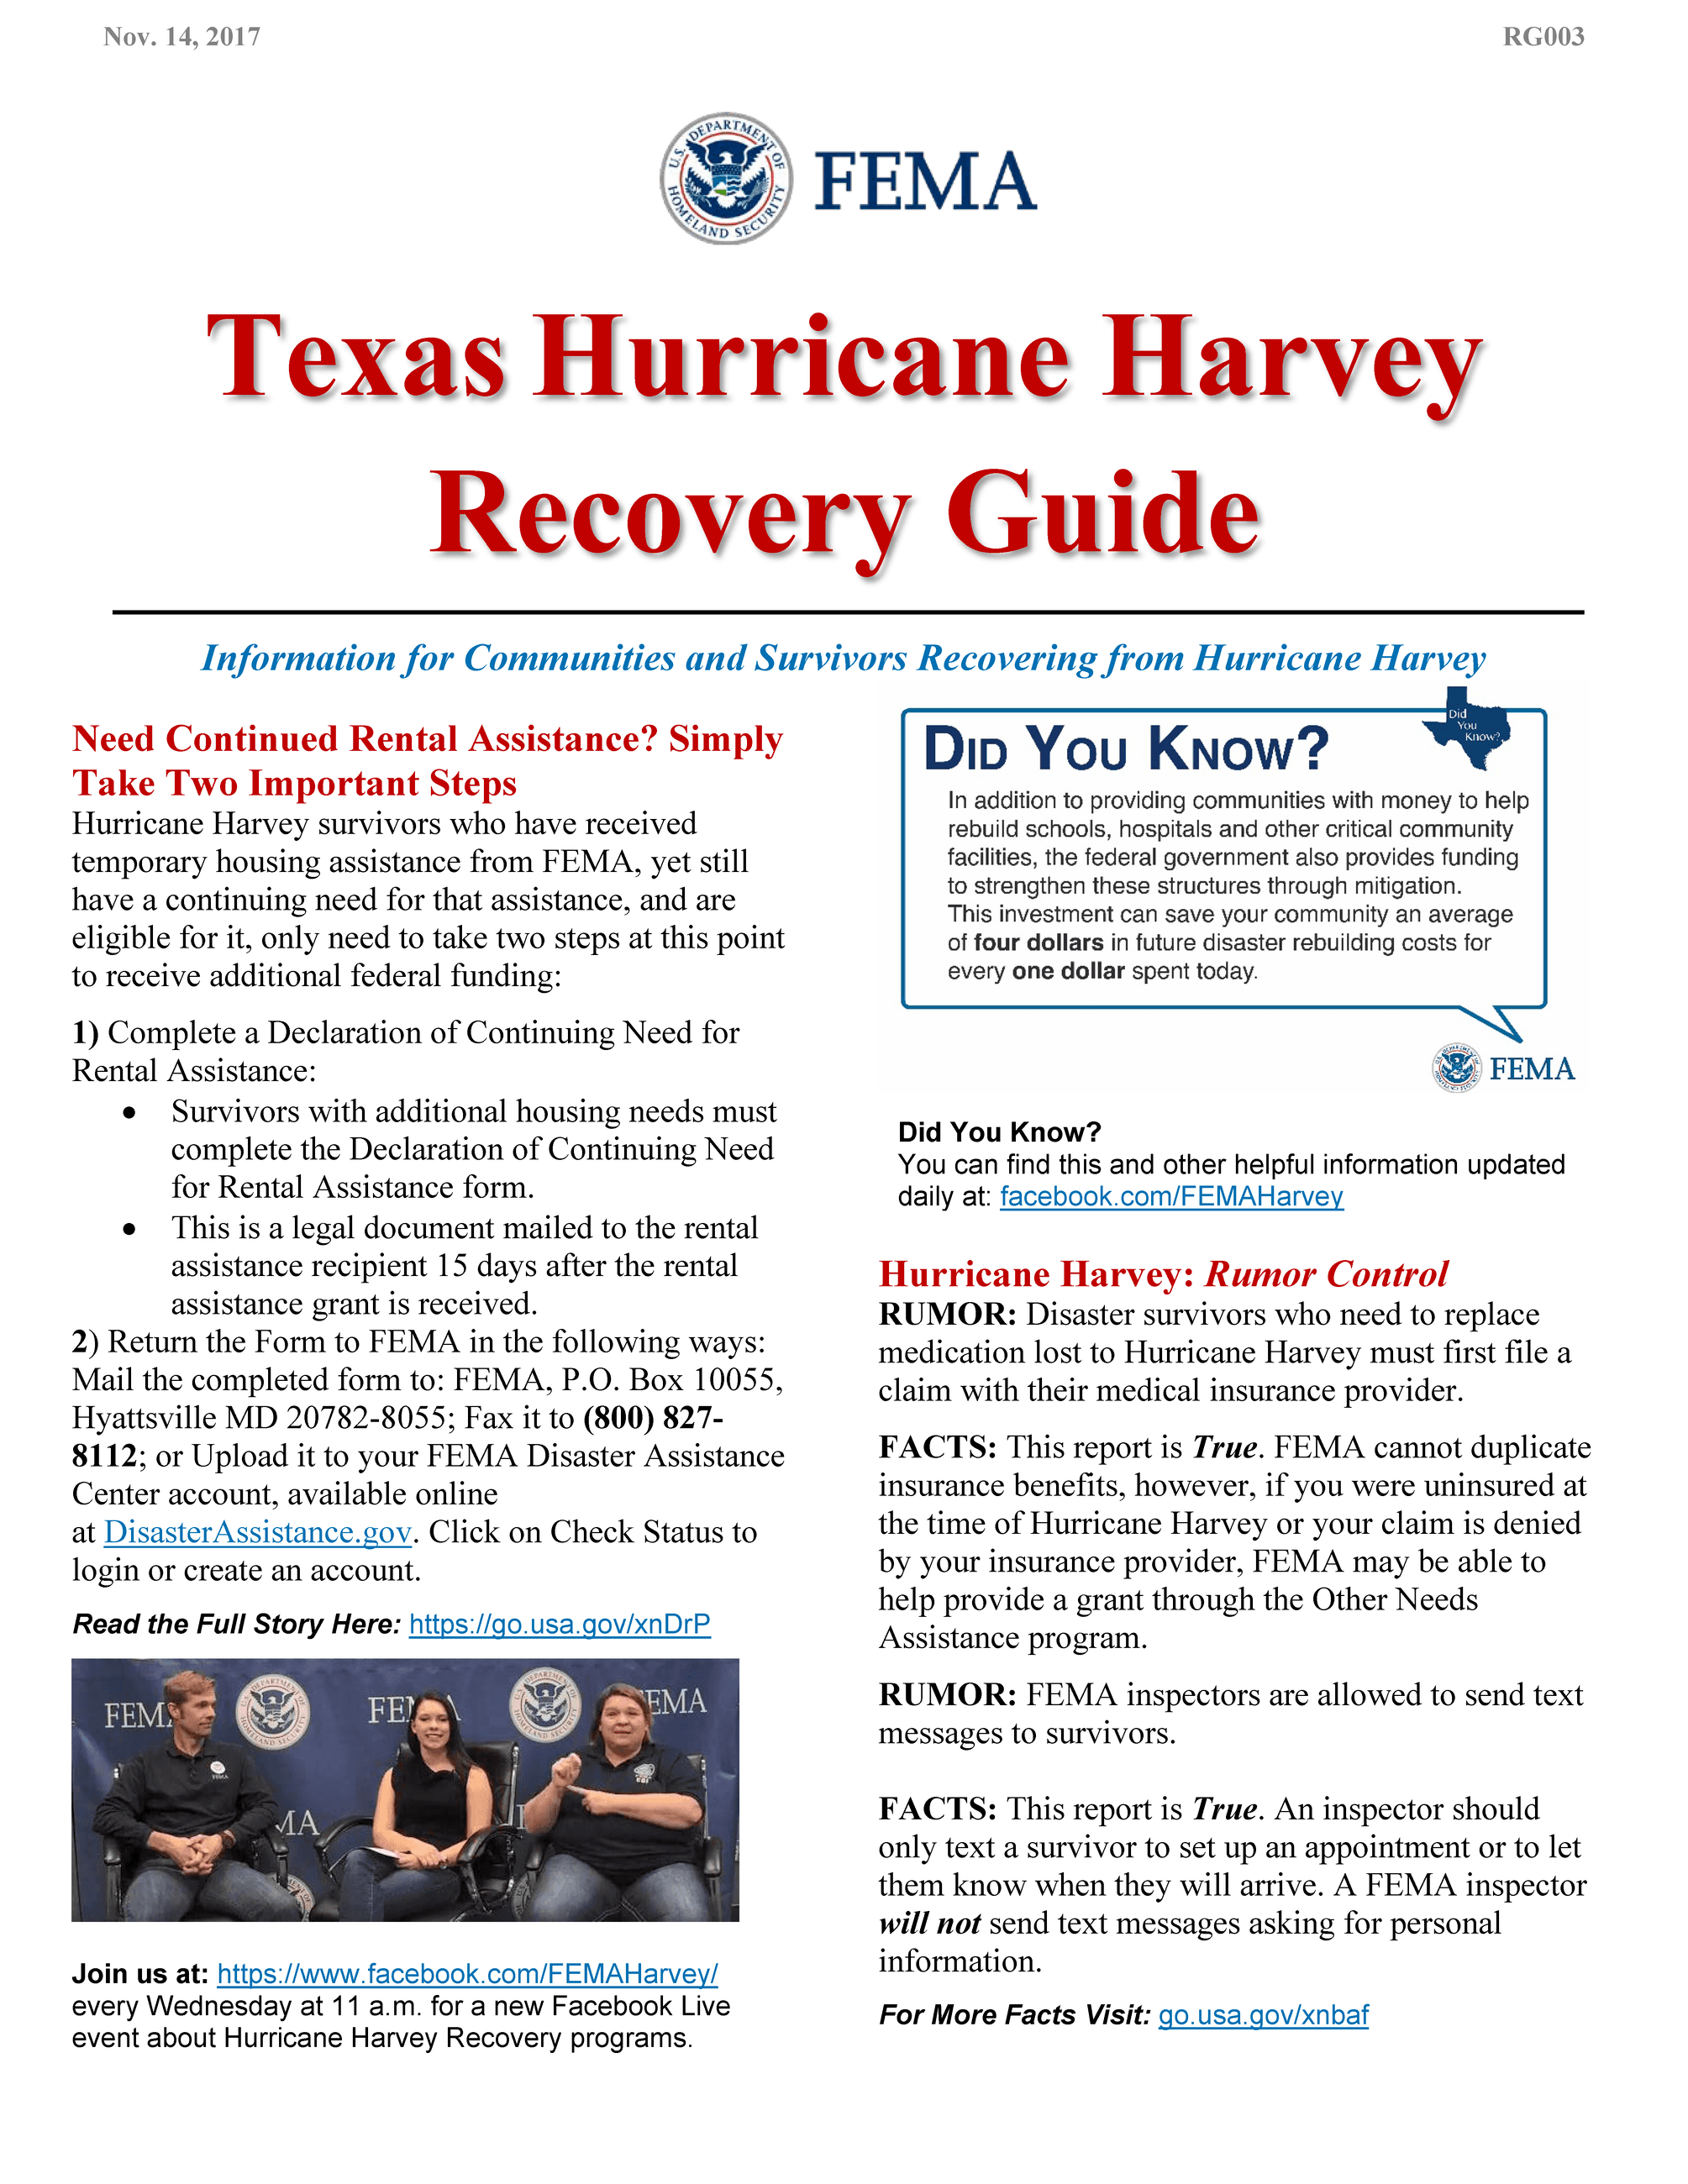 DR-4332 (FINAL) Recovery Guide 11_14_17 _Page_1